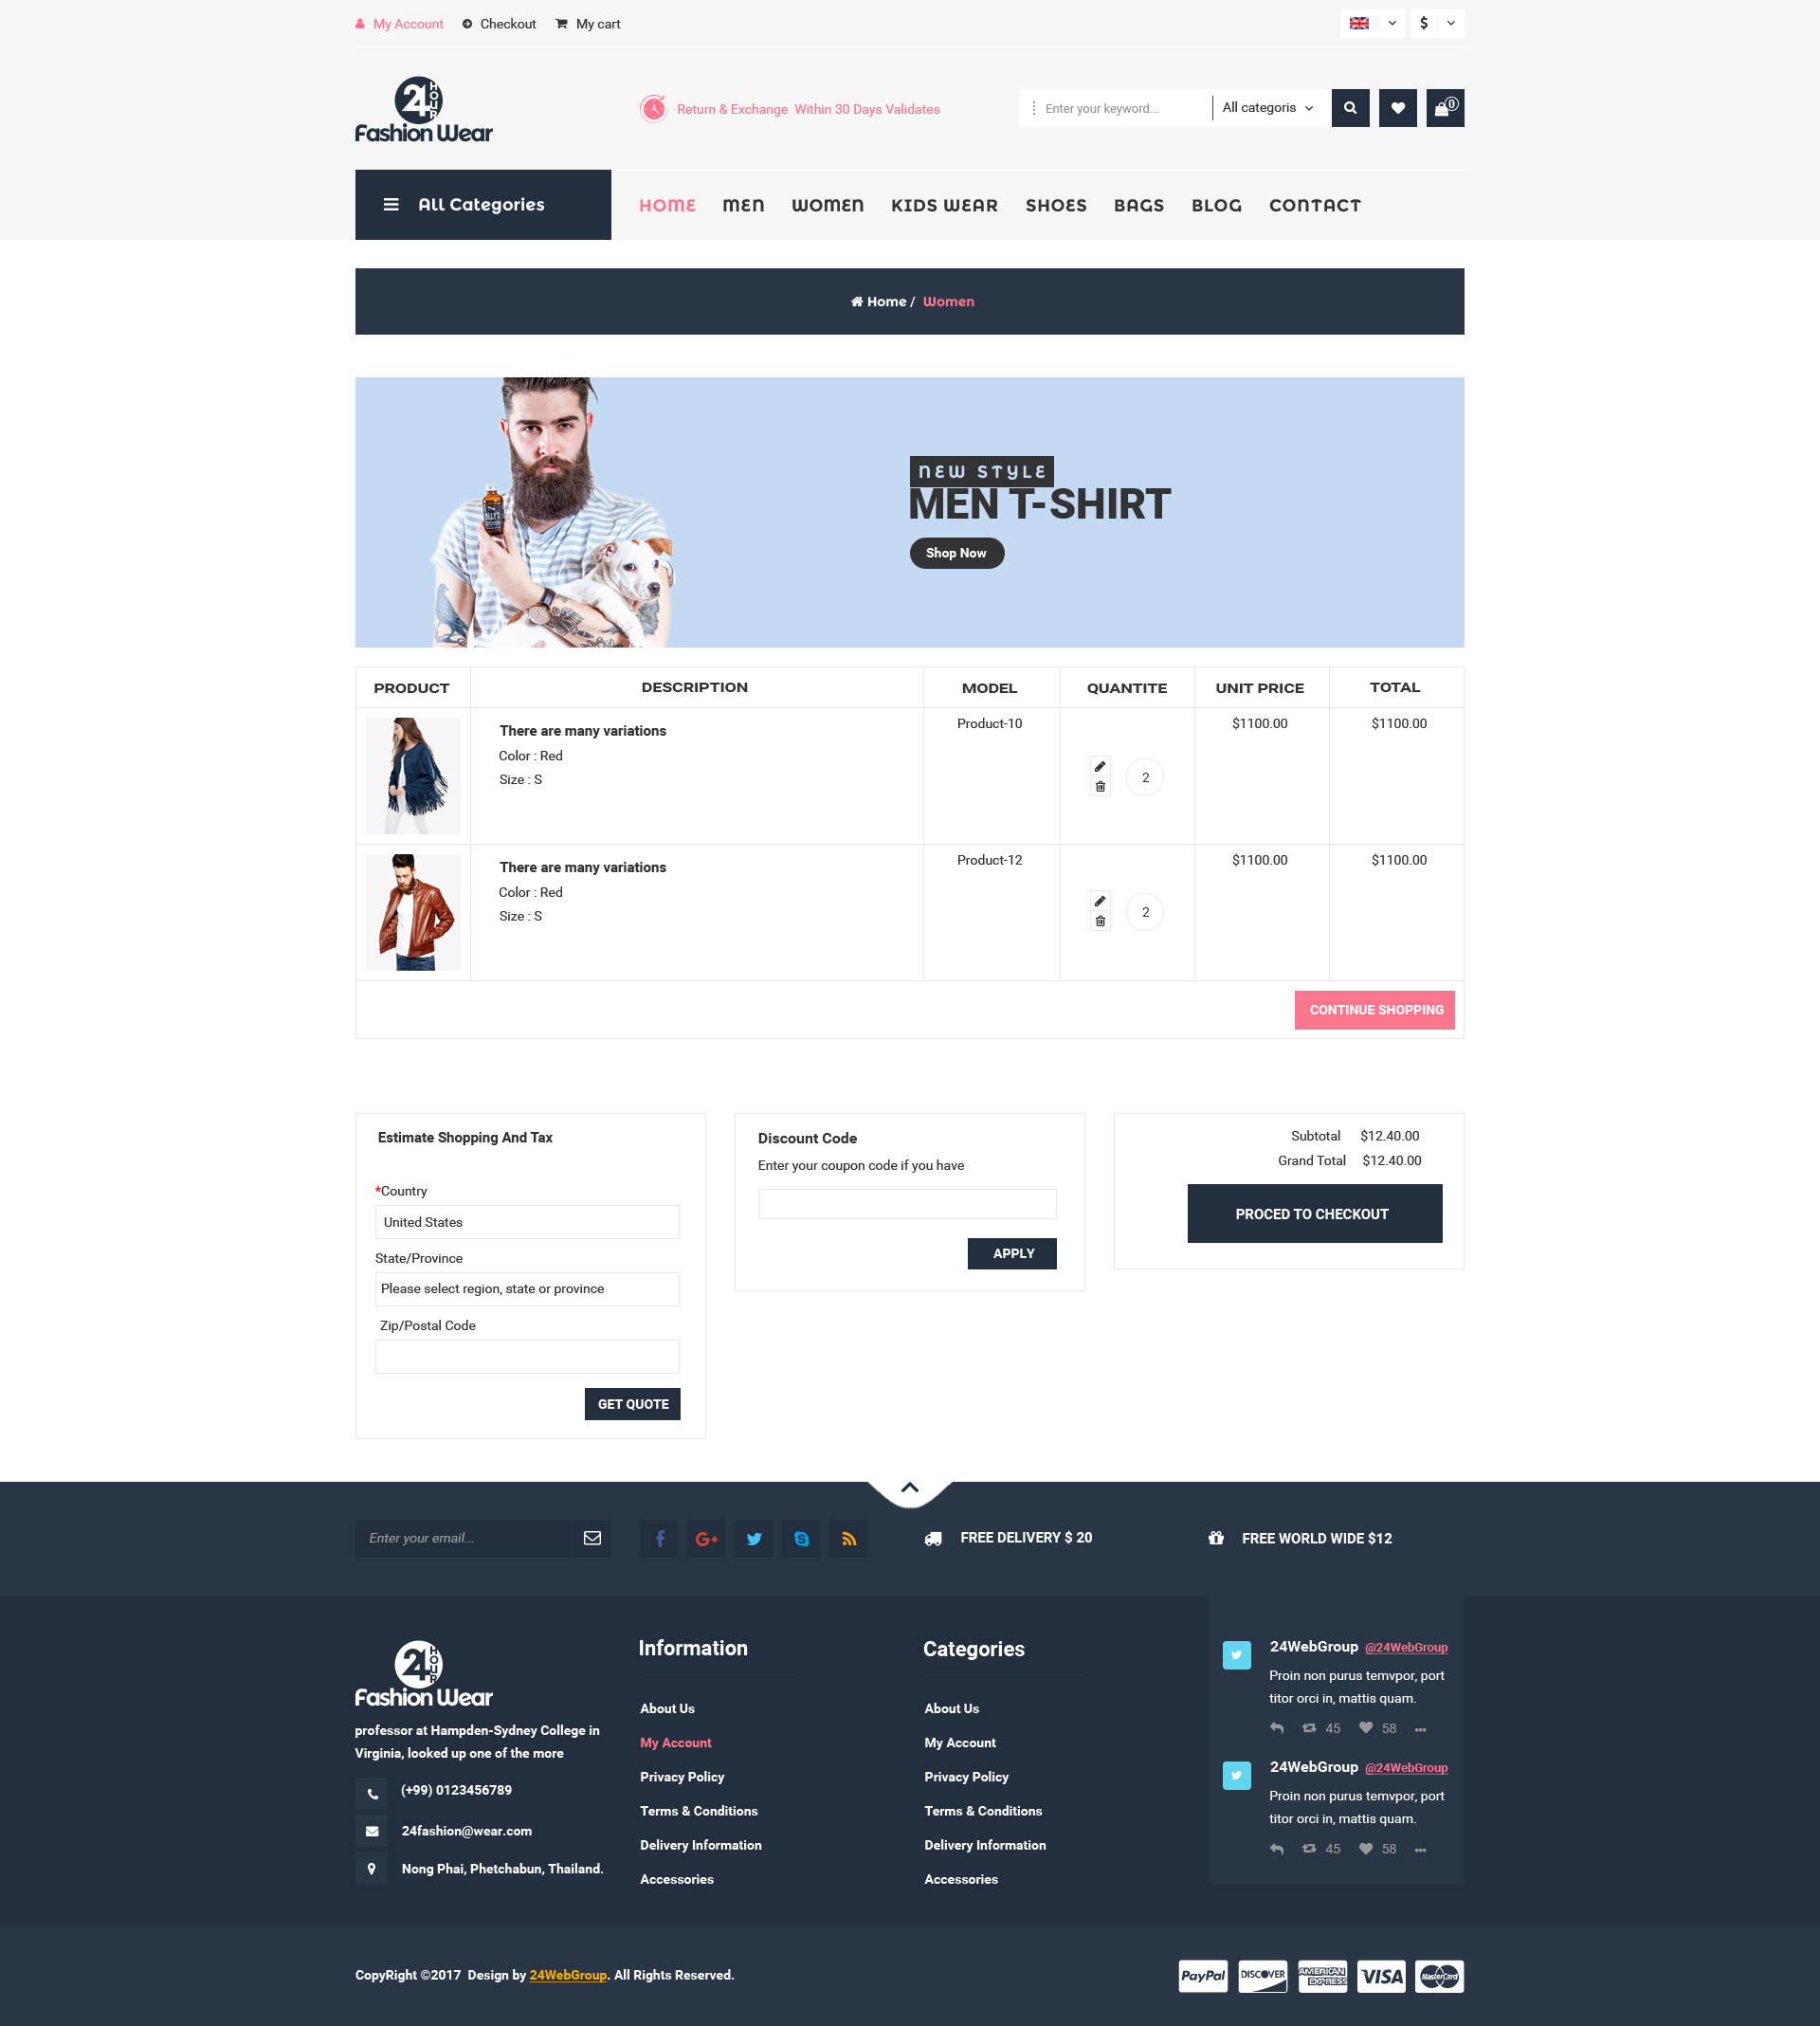 Excellent 10 Best Resume Templates Small 10 Envelope Template Illustrator Square 10 Off Coupon Template 10 Tips For Making A Resume Young 10 Words Not To Put On Your Resume Orange17 Worst Things To Say On Your Resume Business Insider 24 Hour Fashion Wear ECommerce PSD Template By 24webgroup ..